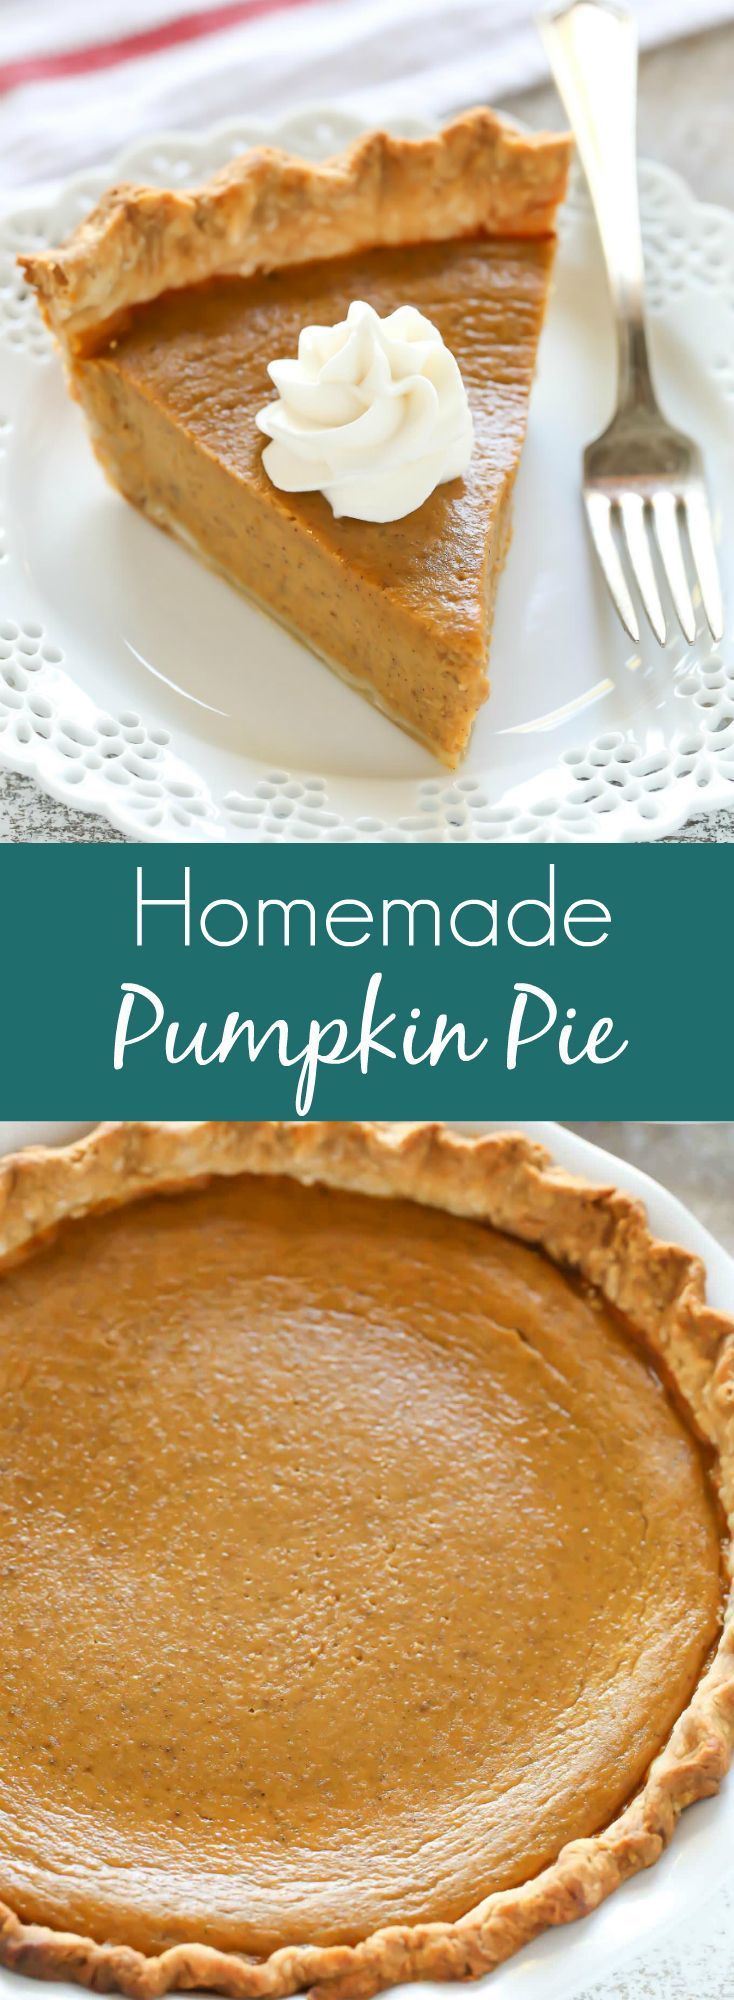 Best 25+ Homemade pumpkin pie ideas on Pinterest | Pumpkin pie ...